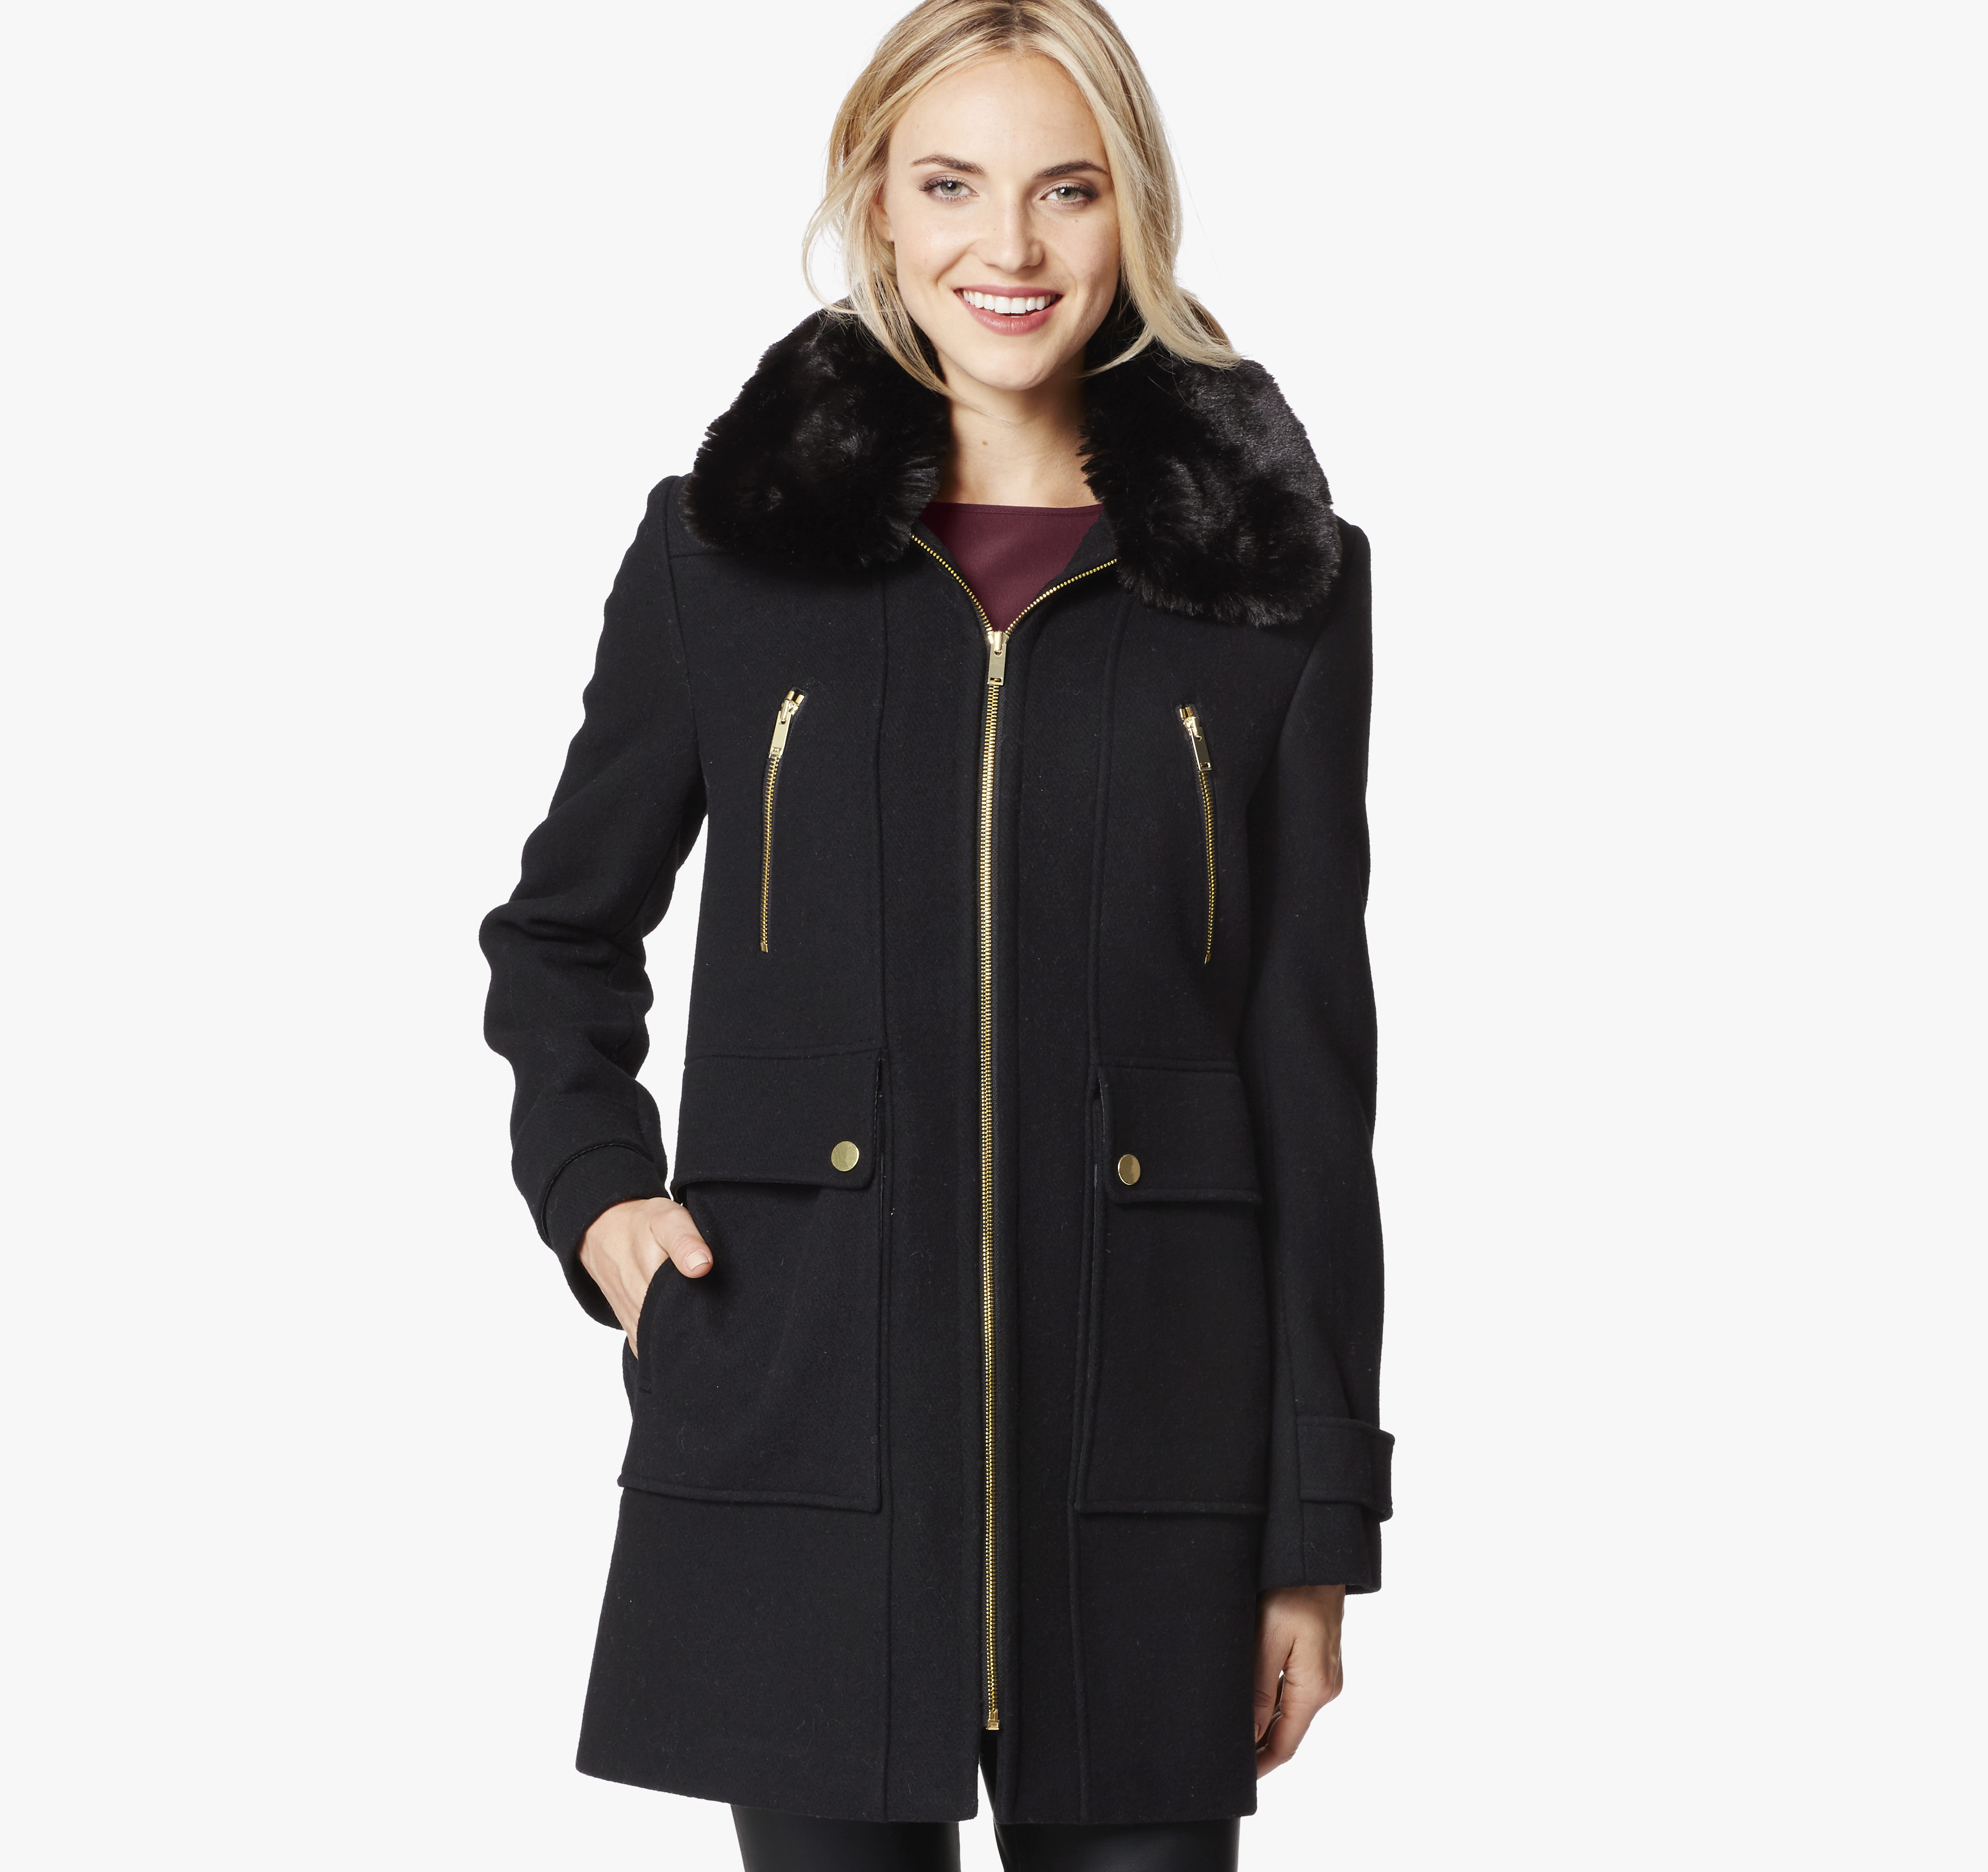 Hooded Wool Coat with Fur Collar | Johnston & Murphy